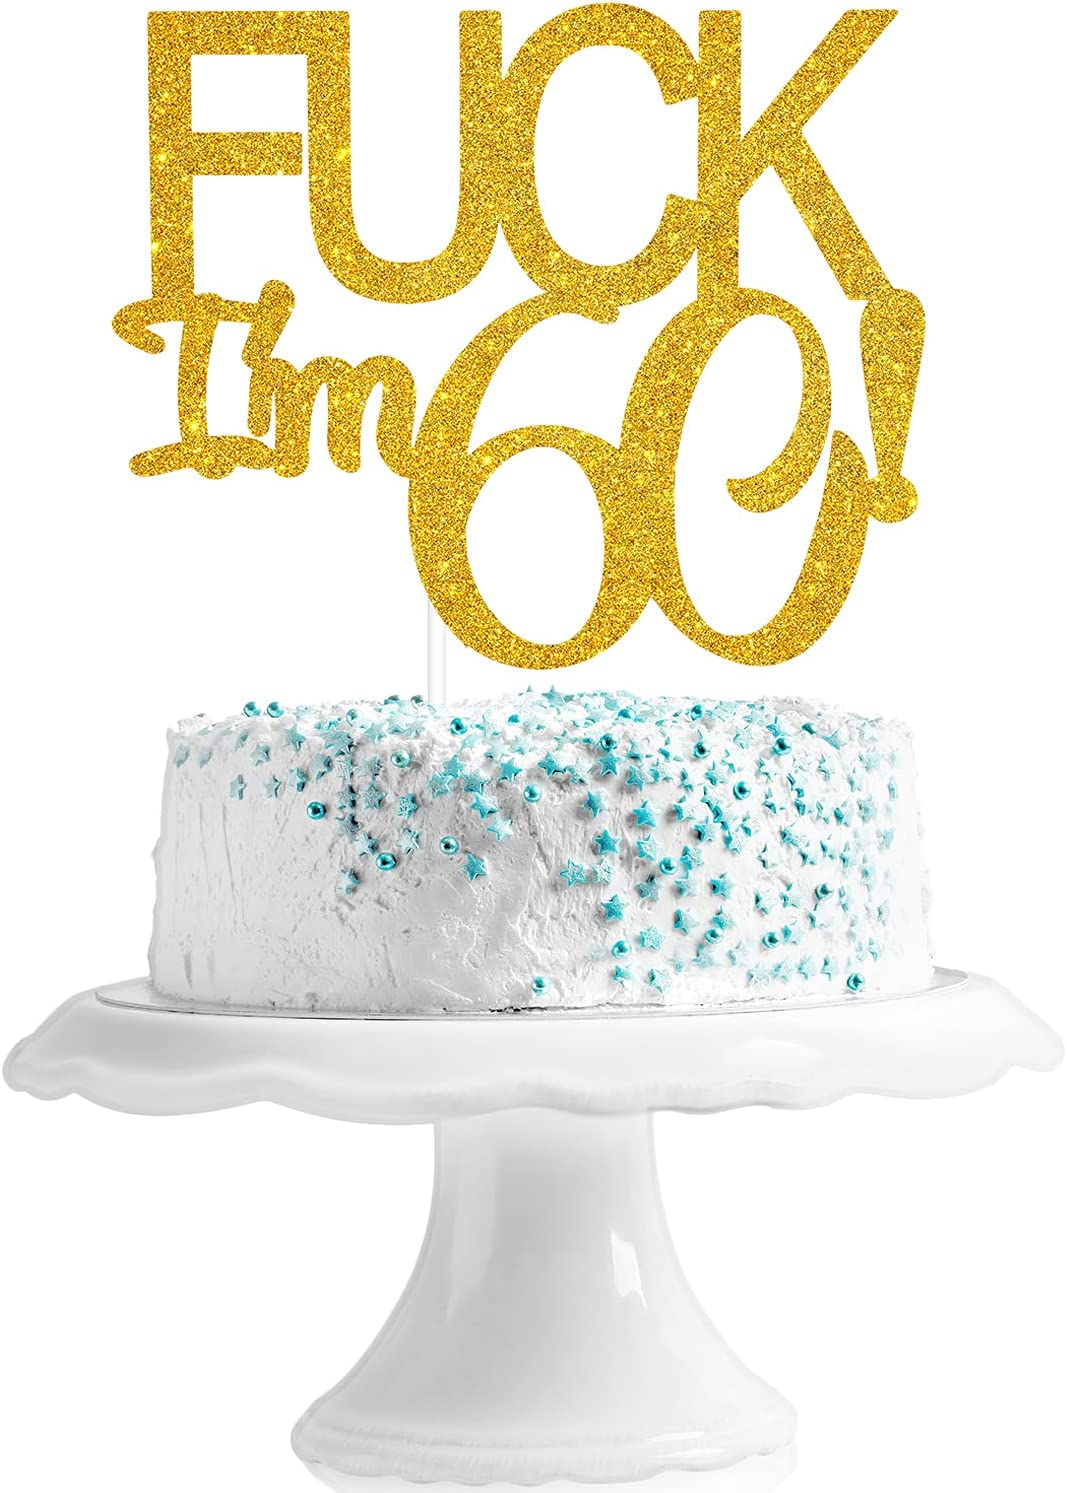 Funny Fuck I'm 60 Birthday Cake Topper - Gold Glitter Fabulous Sixty Years Birthday Cake Décor - Cheers To Dirty 60th Birthday Party Decoration